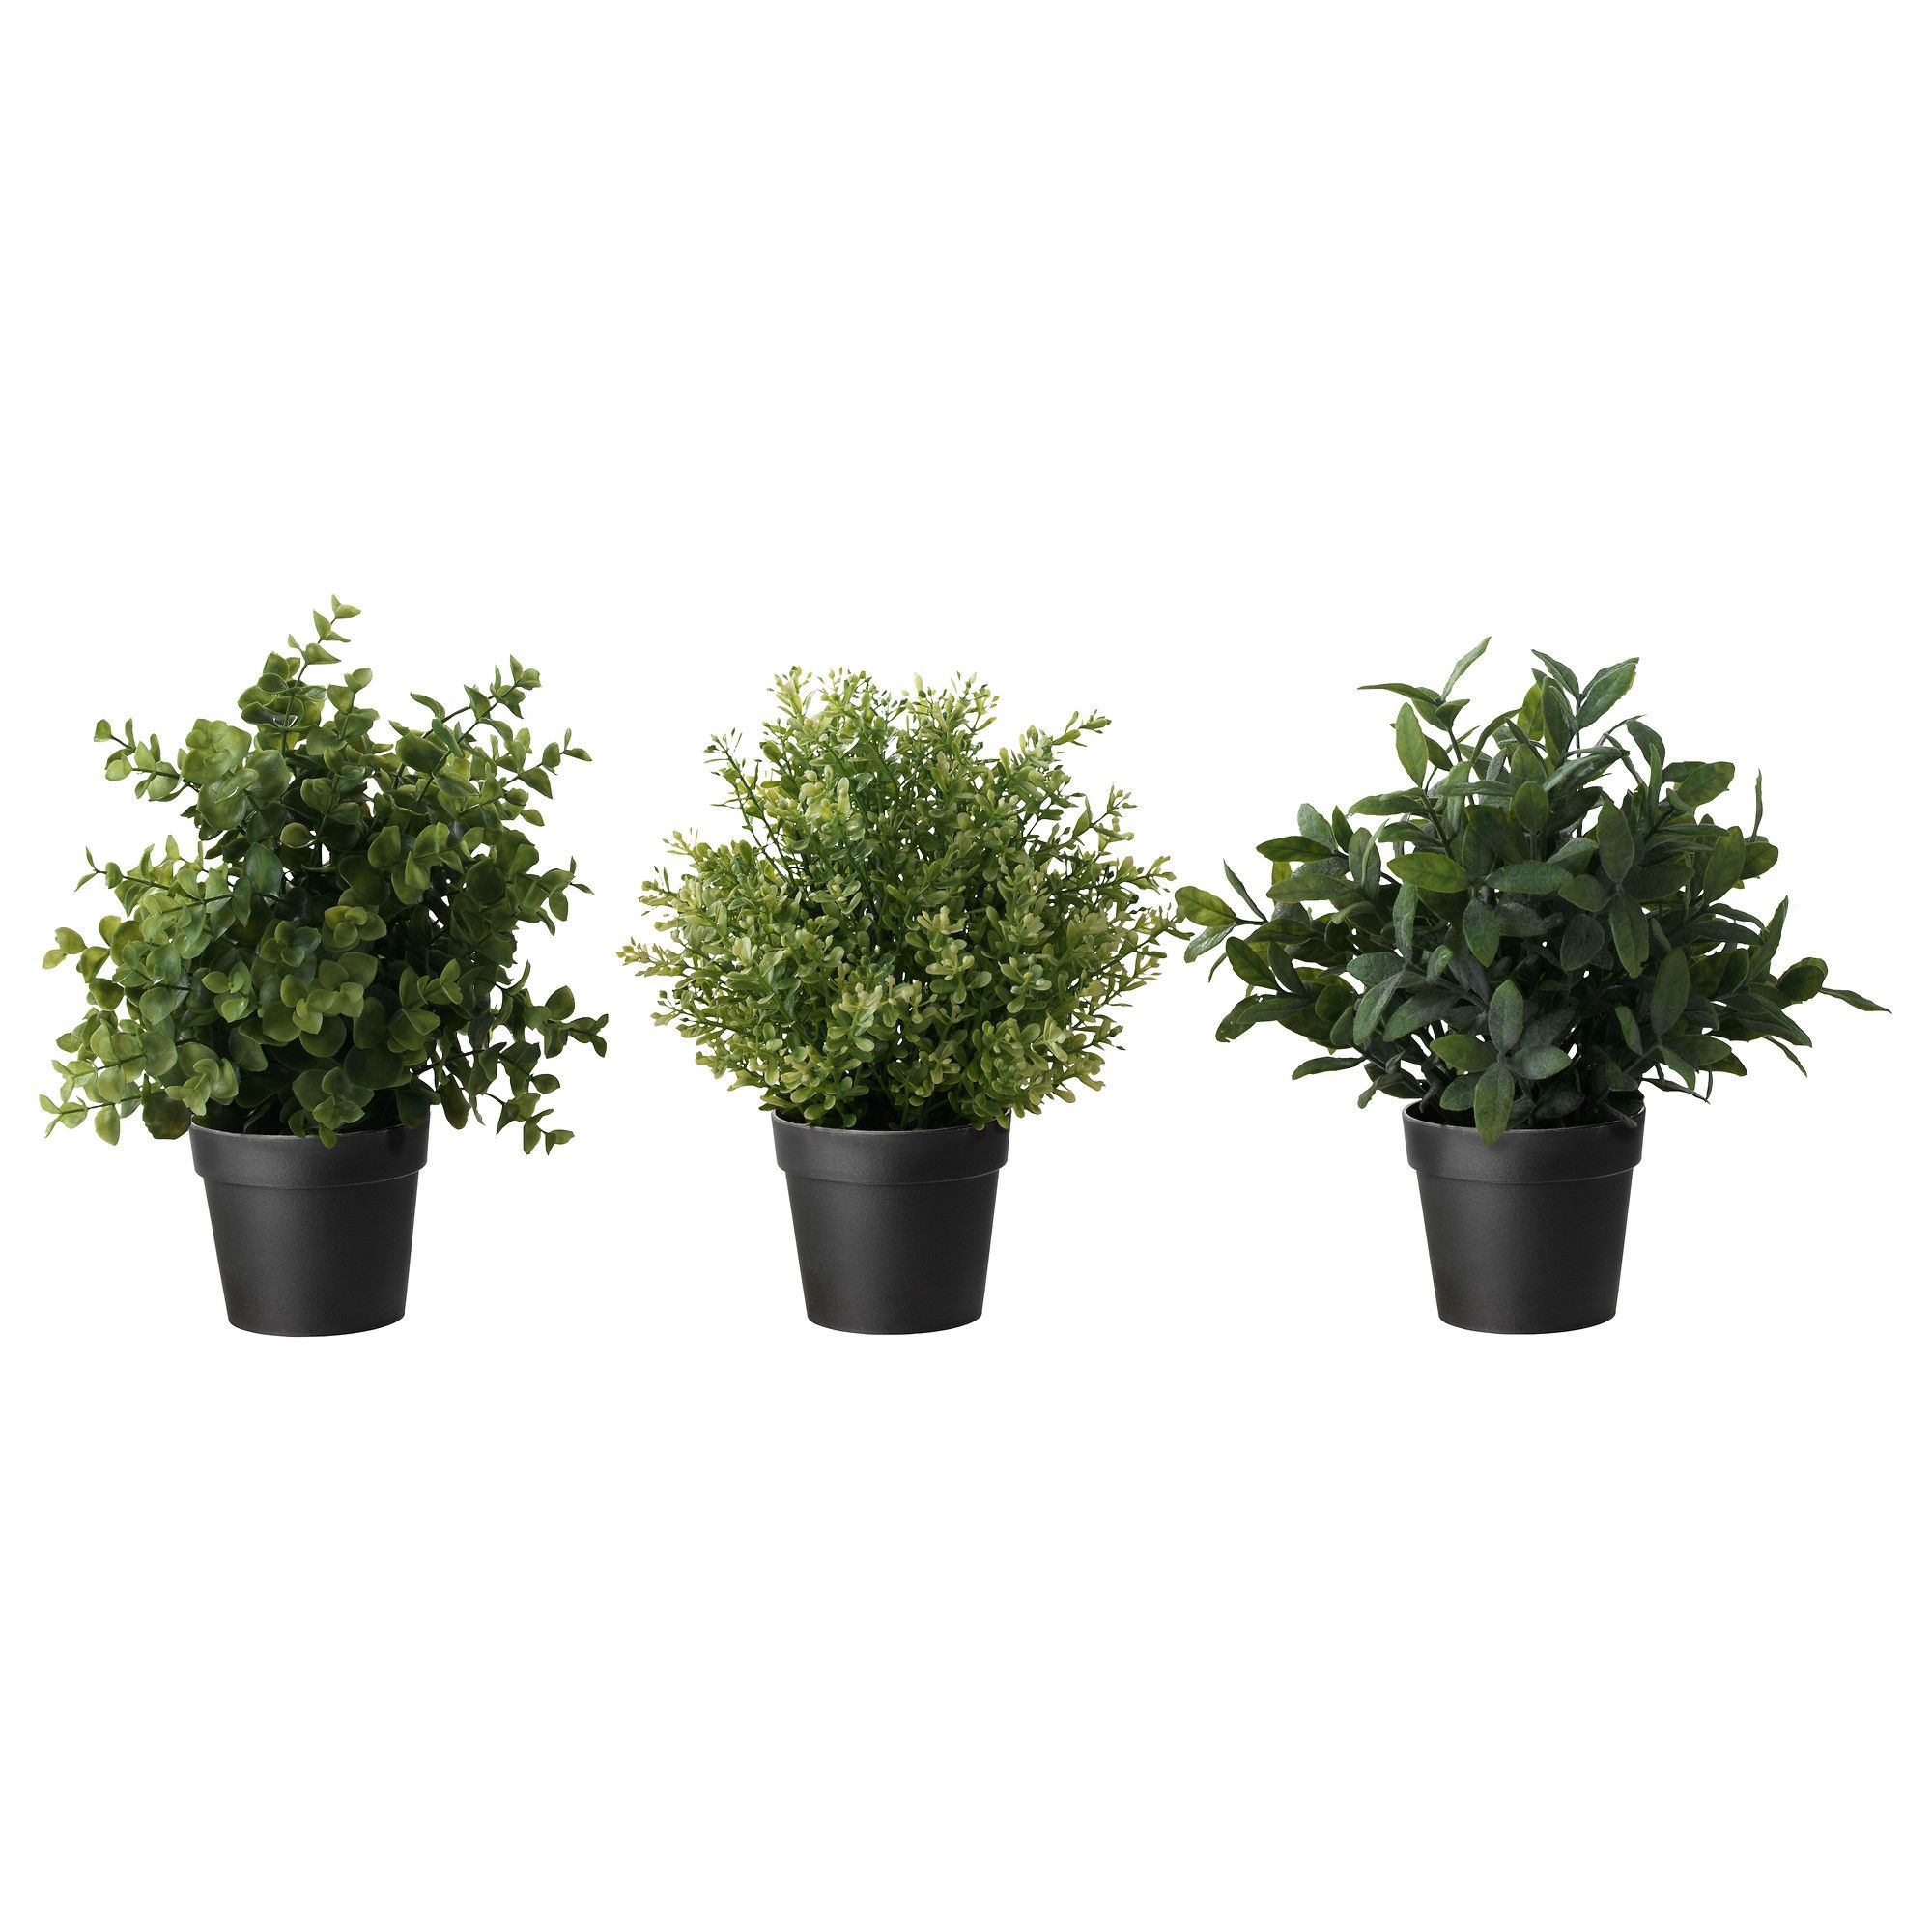 Fresh Home Furnishing Ideas And Affordable Furniture Artificial Potted Plants Small Artificial Plants Ikea Plants